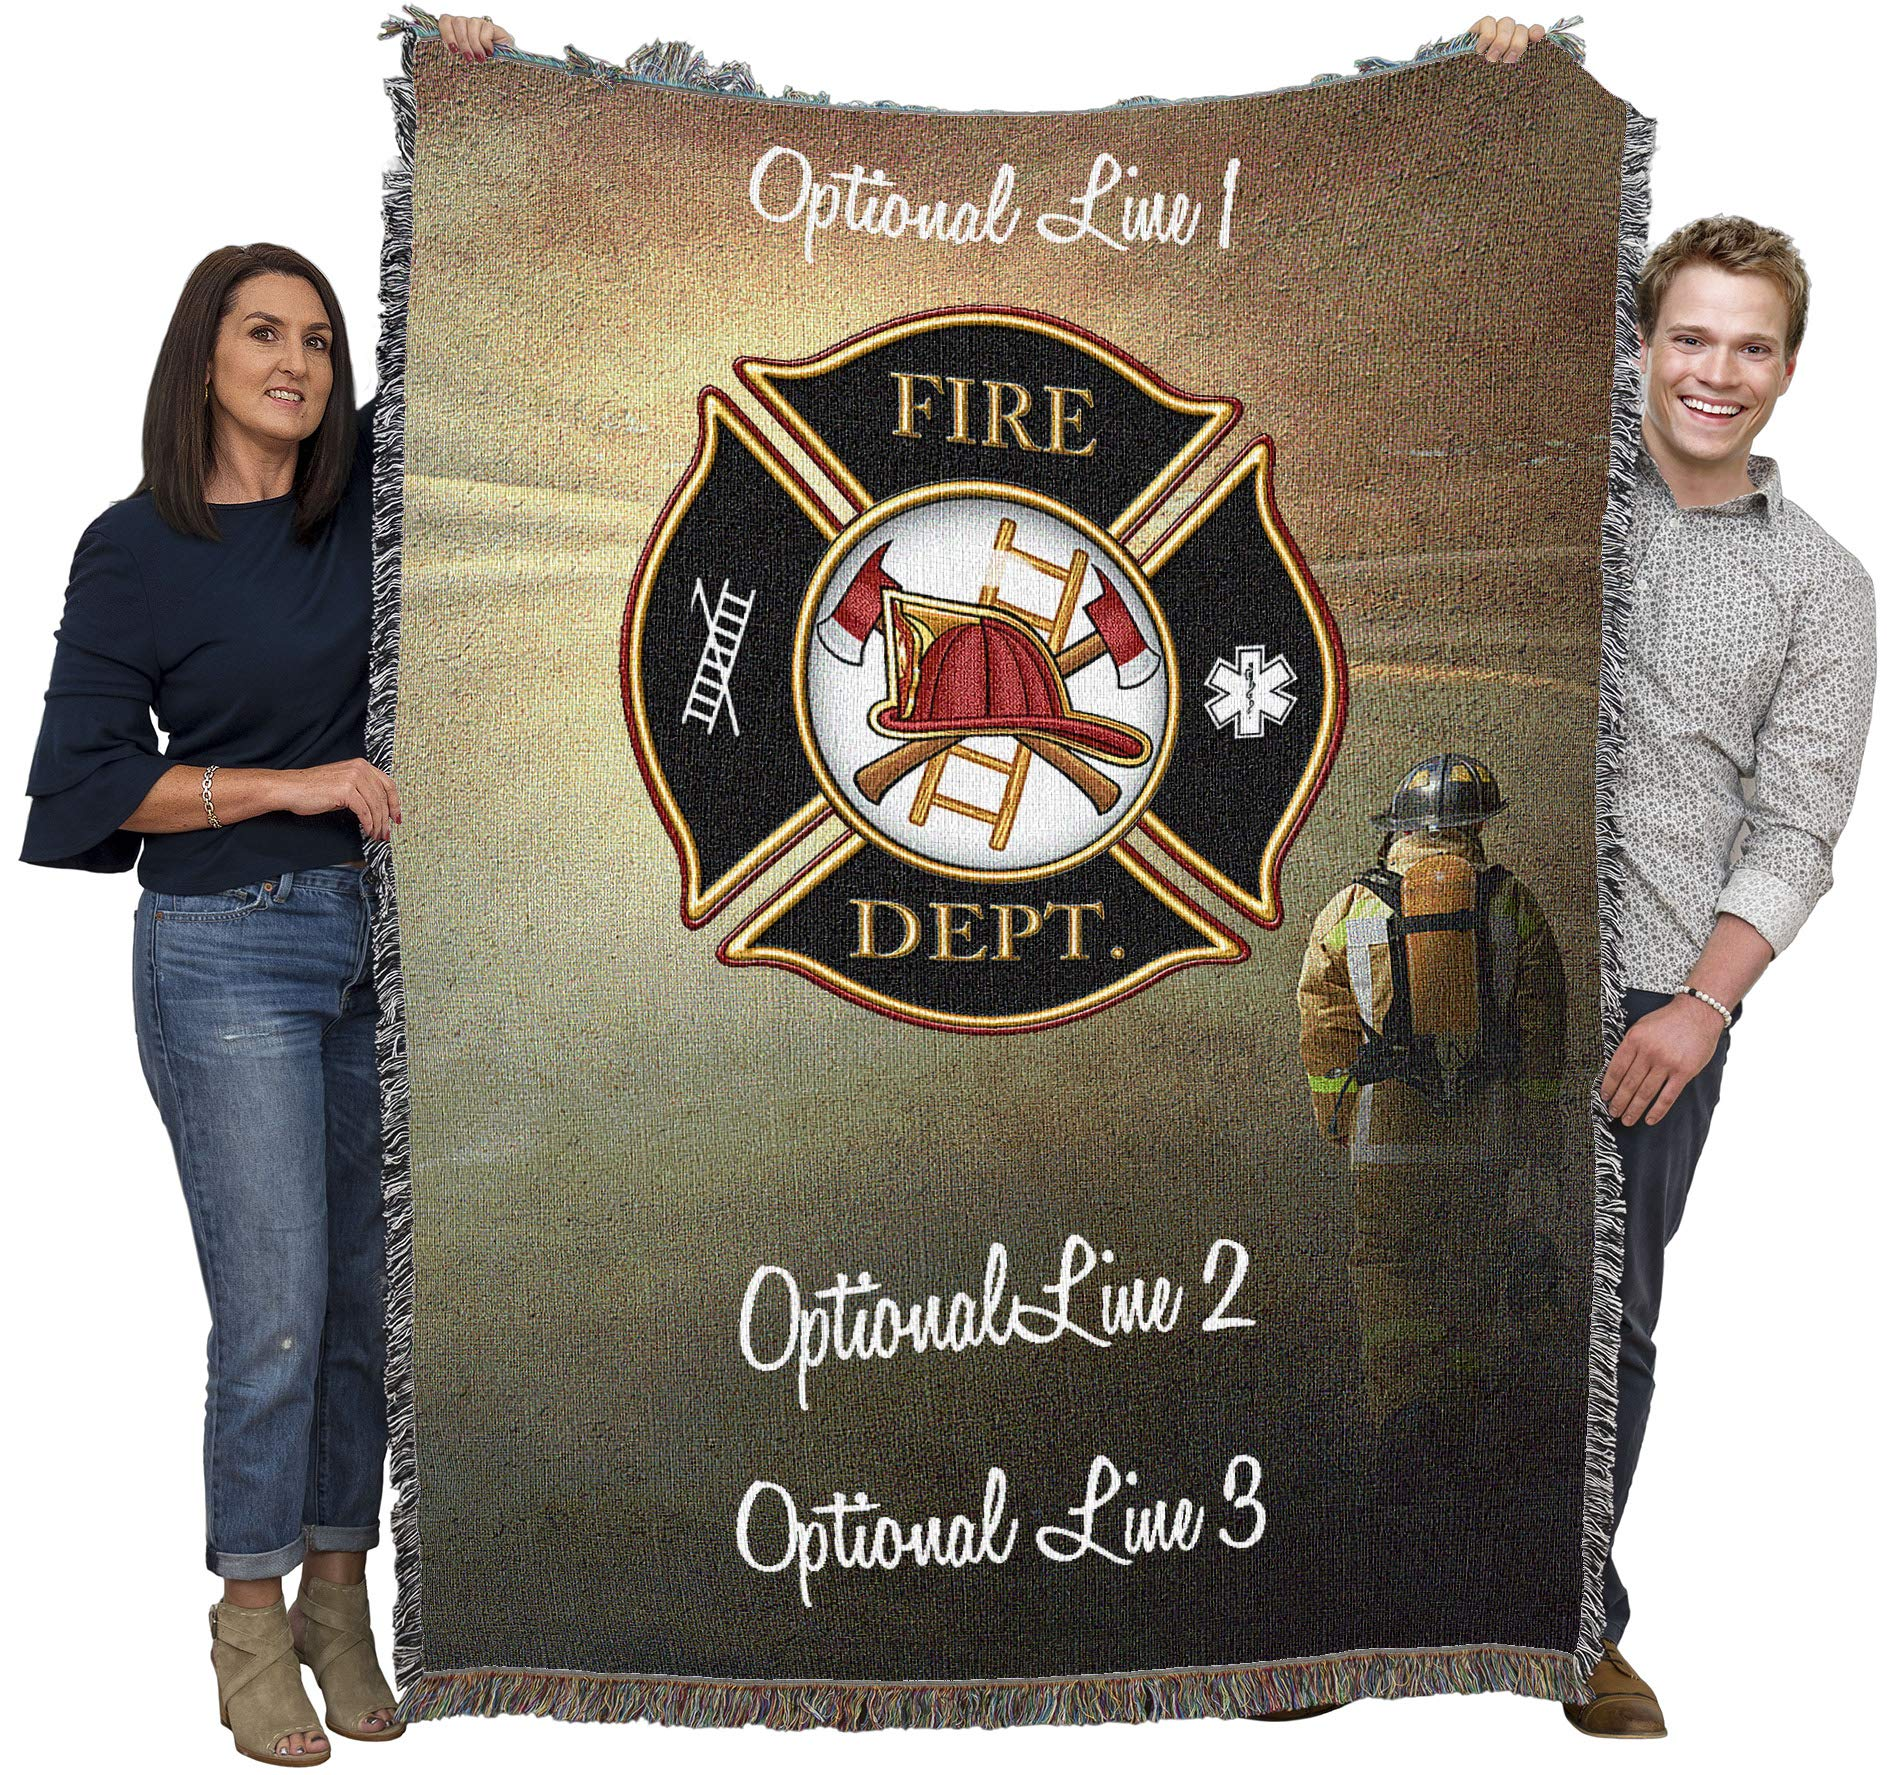 Pure Country Weavers Personalized Fire Fighter Shield Woven Blanket Large Soft Comforting Cotton Throw Made in The USA 72x54